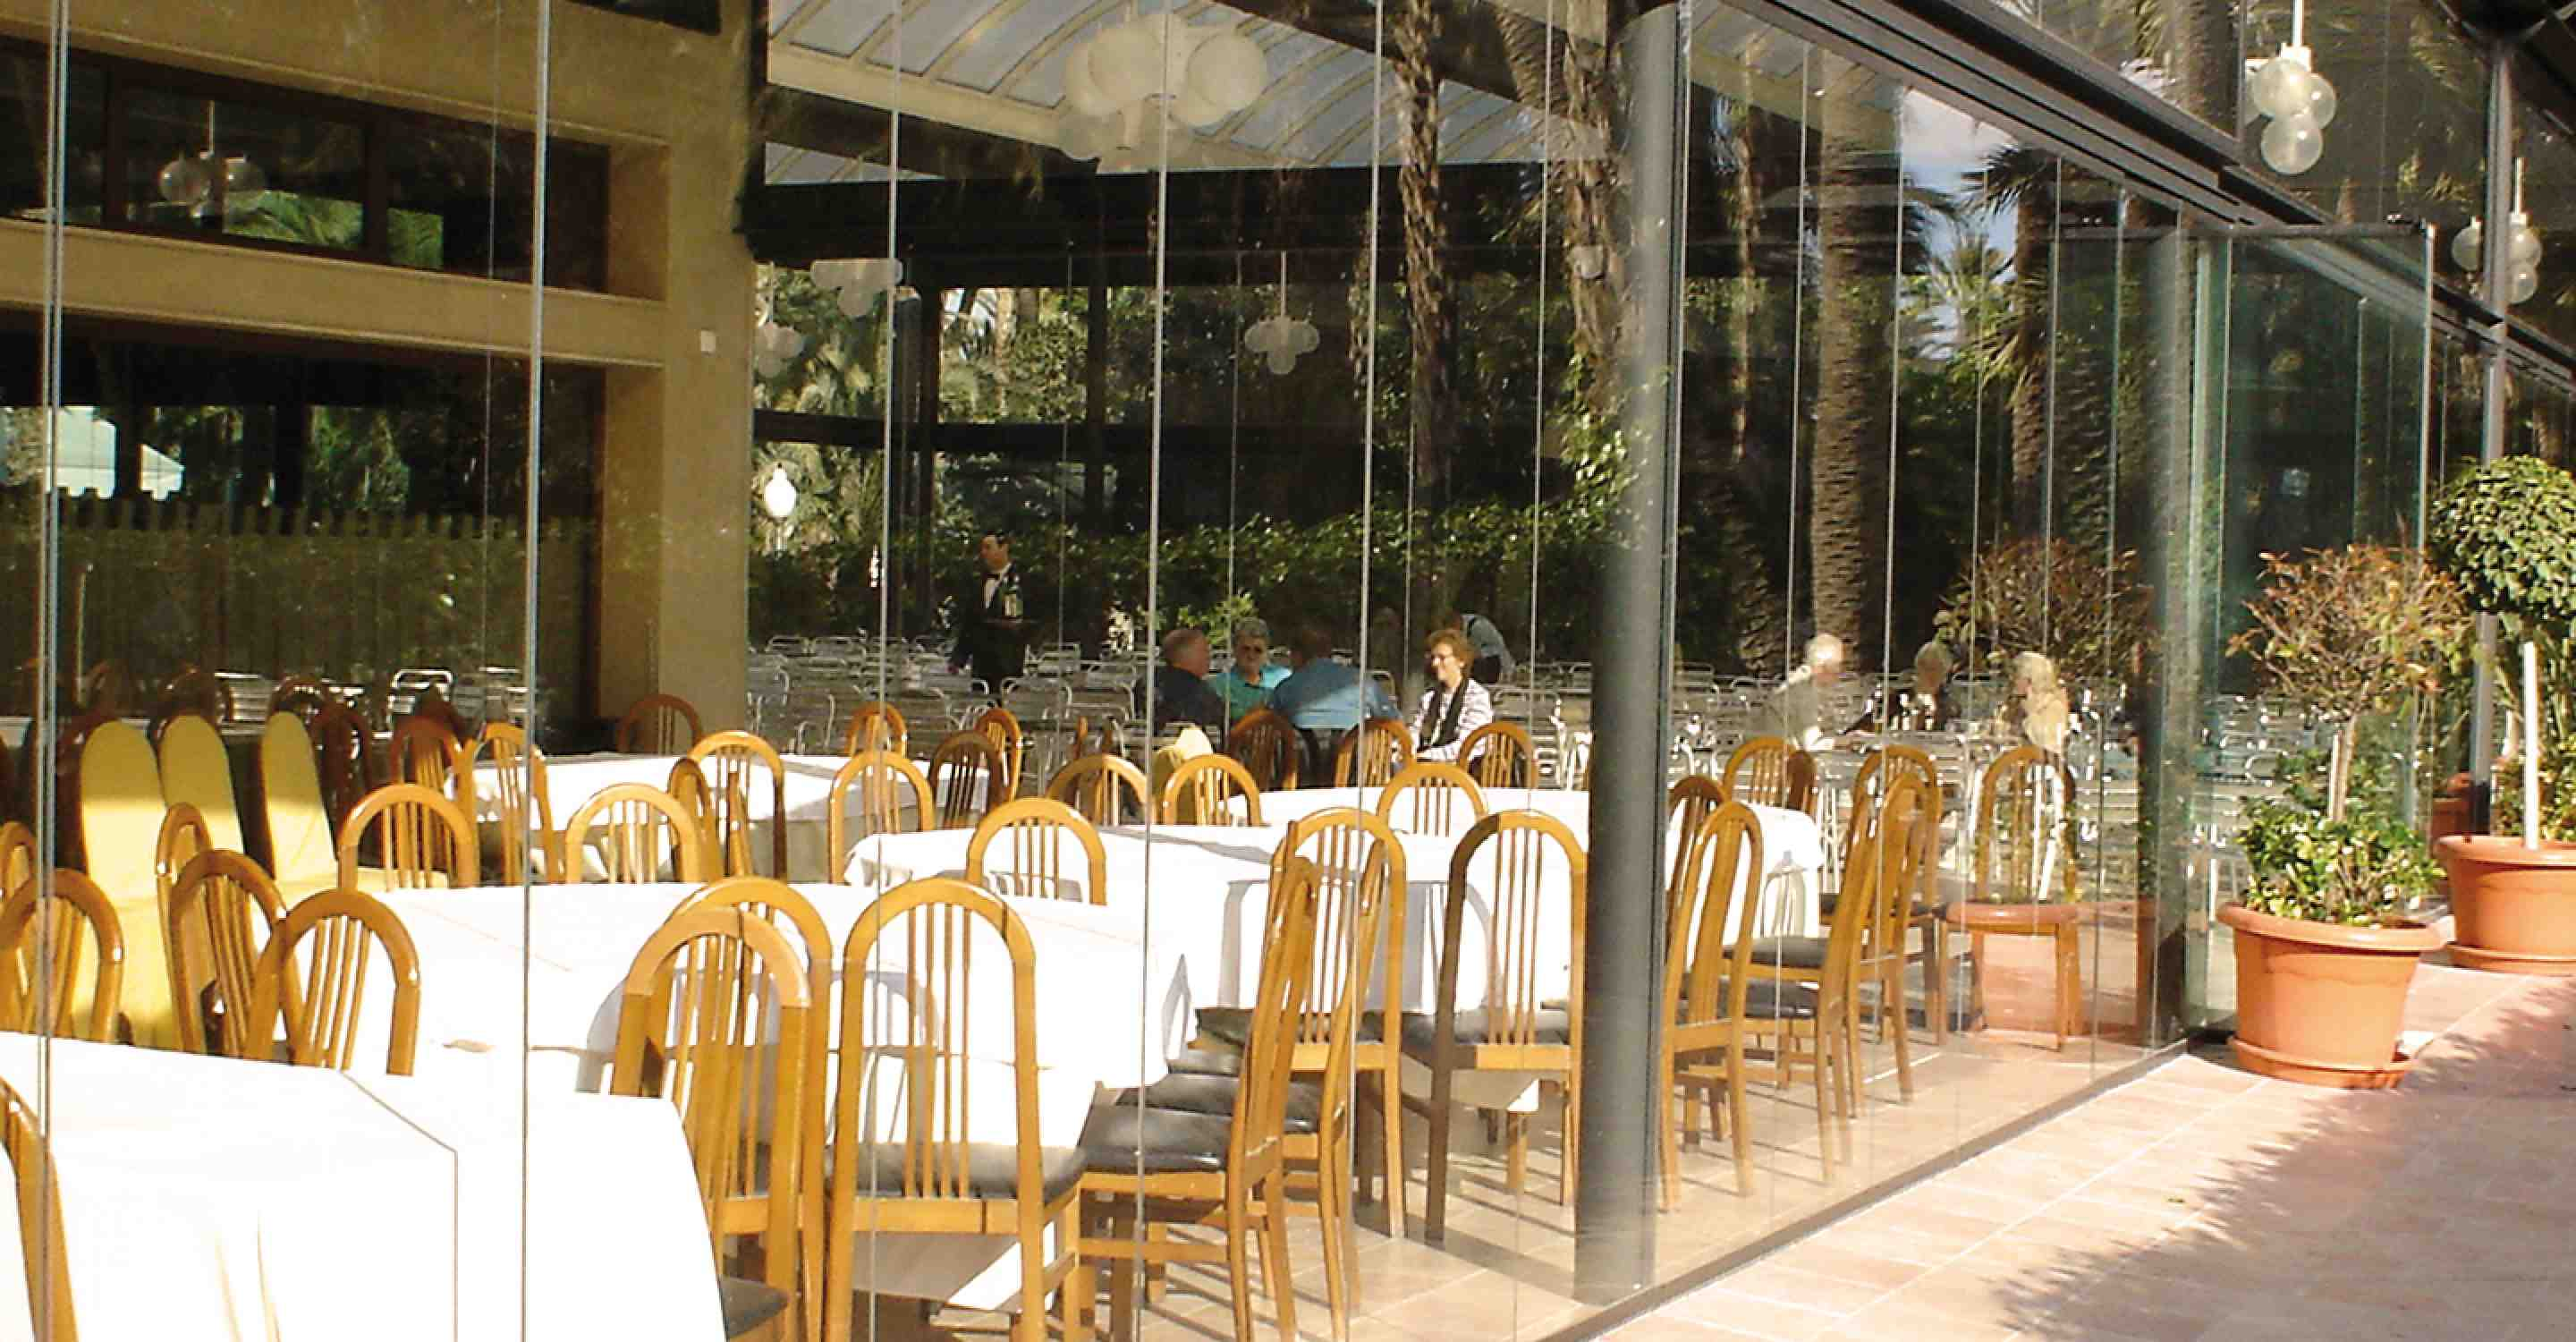 restaurant patio enclosure, glass patio enclosures, balcony railings, restaurant profitability